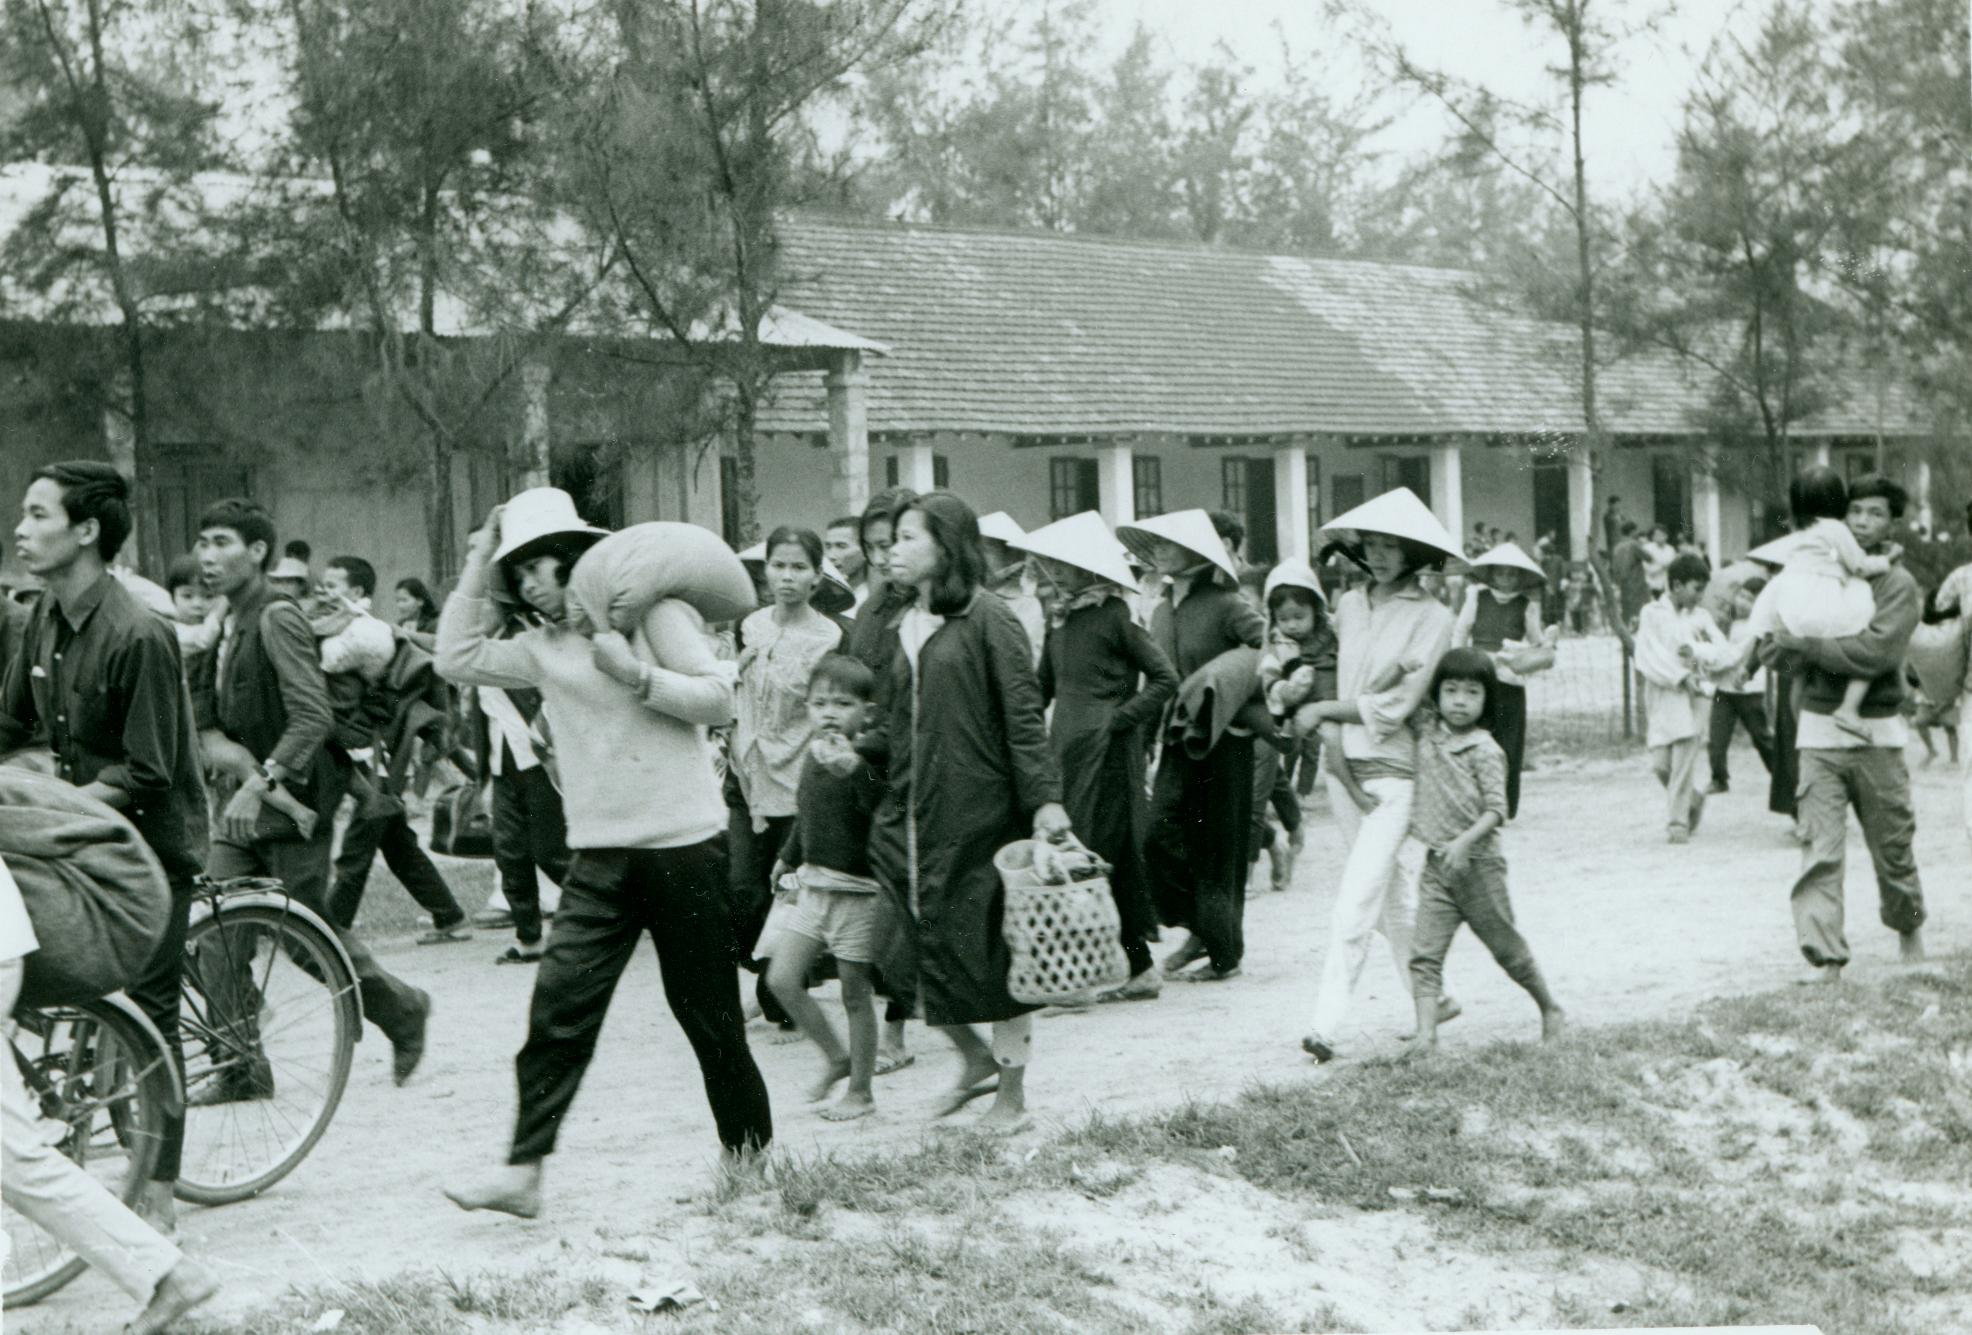 vietnamese refugees in america When american troops made a chaotic, embarrassed withdrawal from vietnam in  april 1975, the flood of terrified vietnamese refugees to.